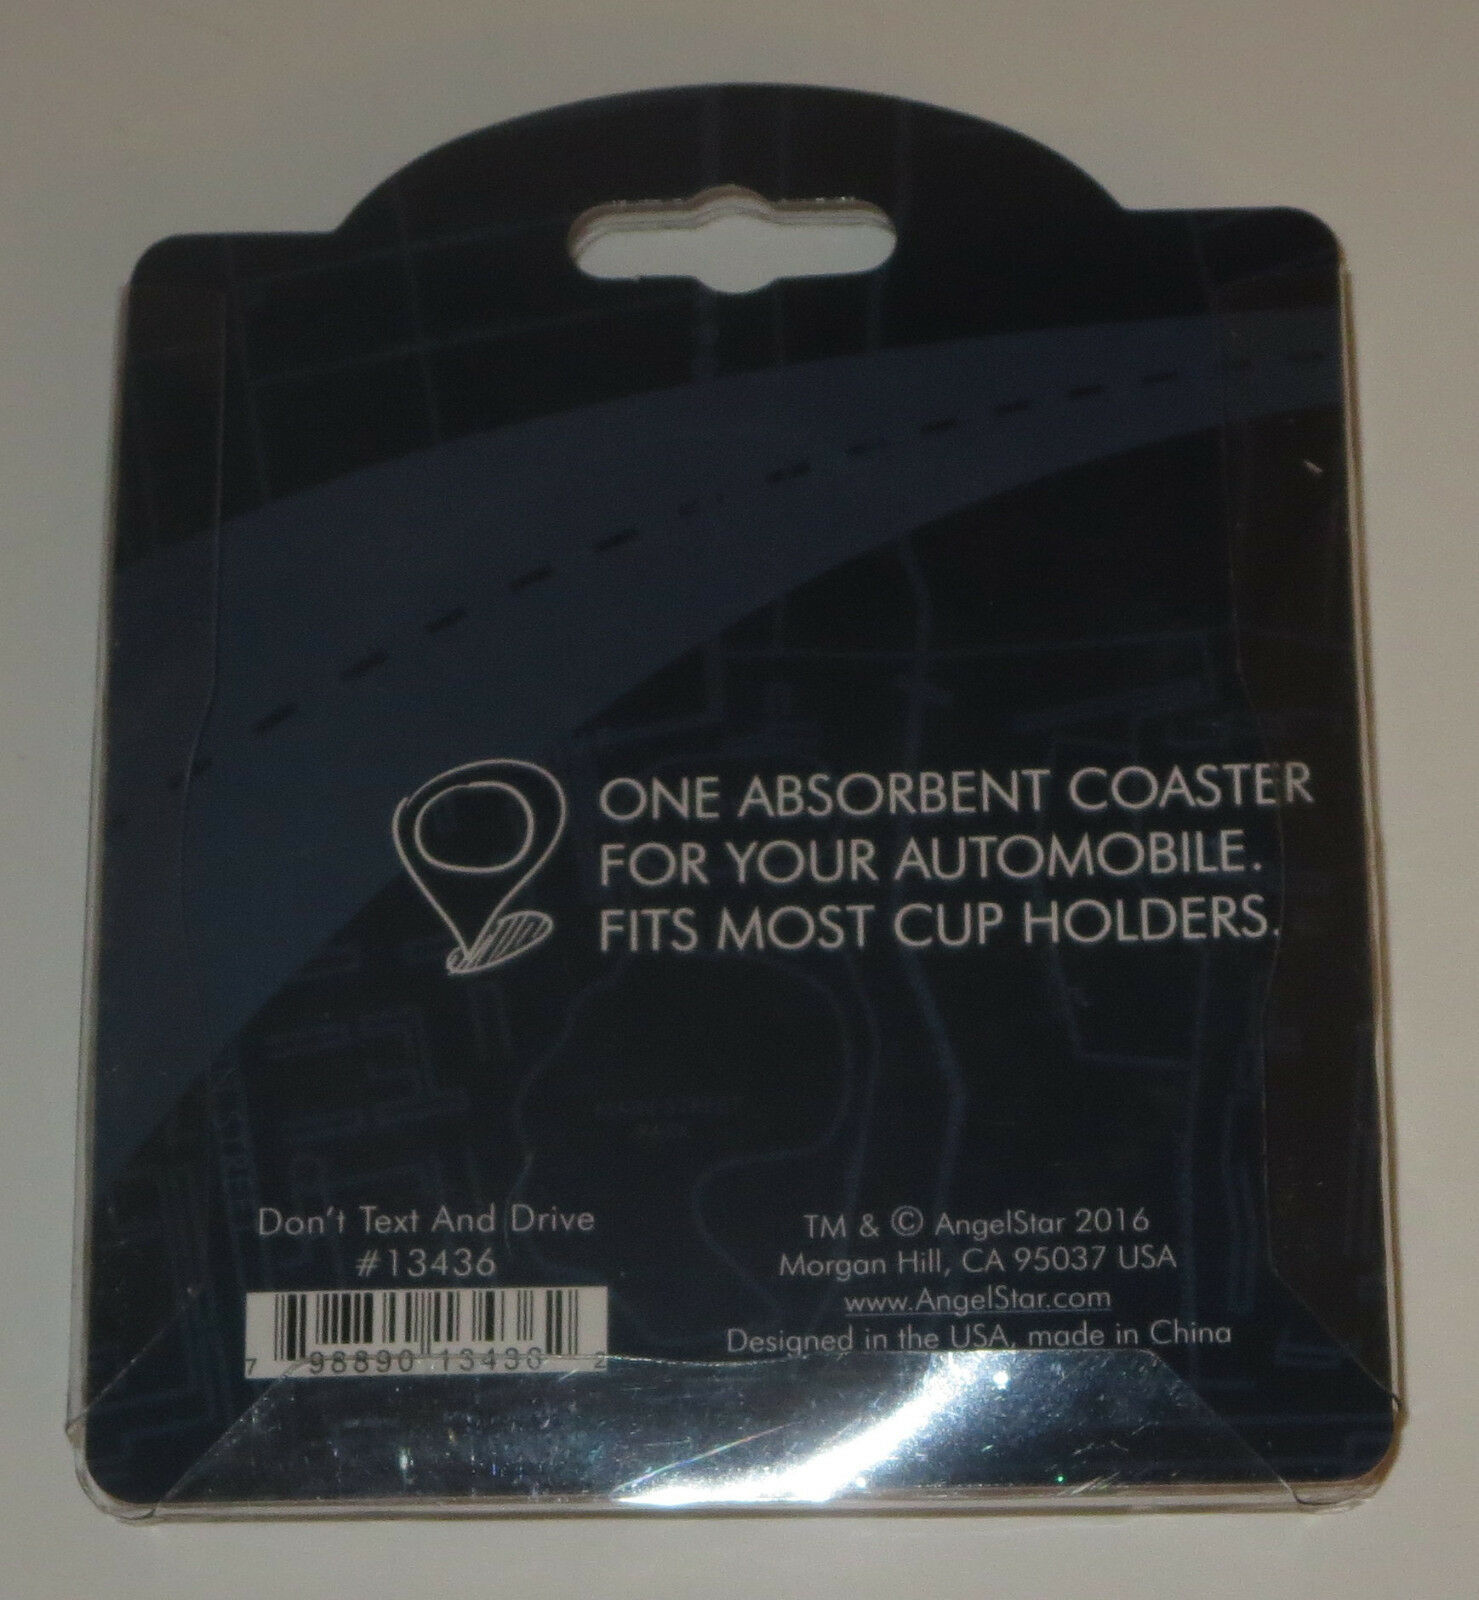 Don't Text And Drive Car Coaster Absorbent Keep Cup Holder Dry New